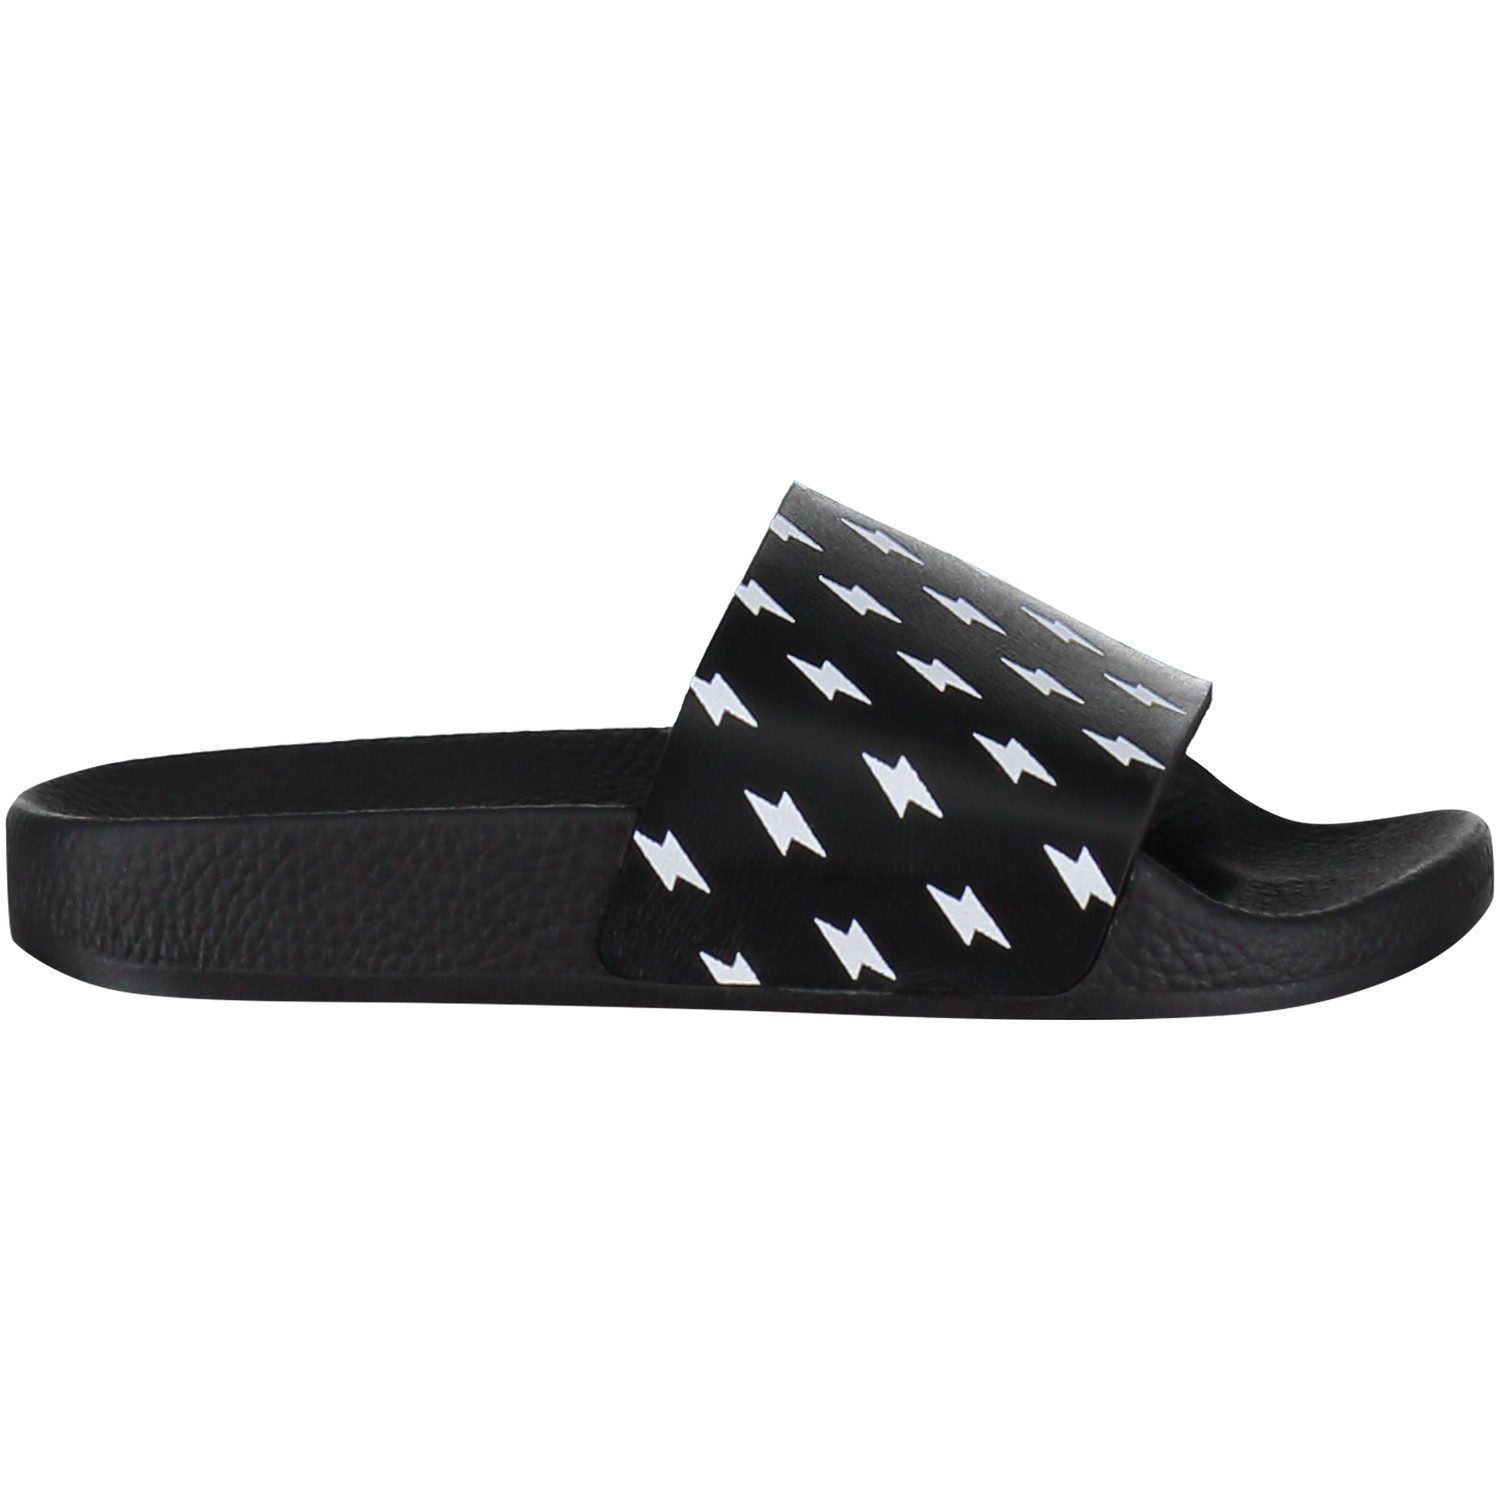 Picture of The White Brand MINI RAYOS kids flipflop black